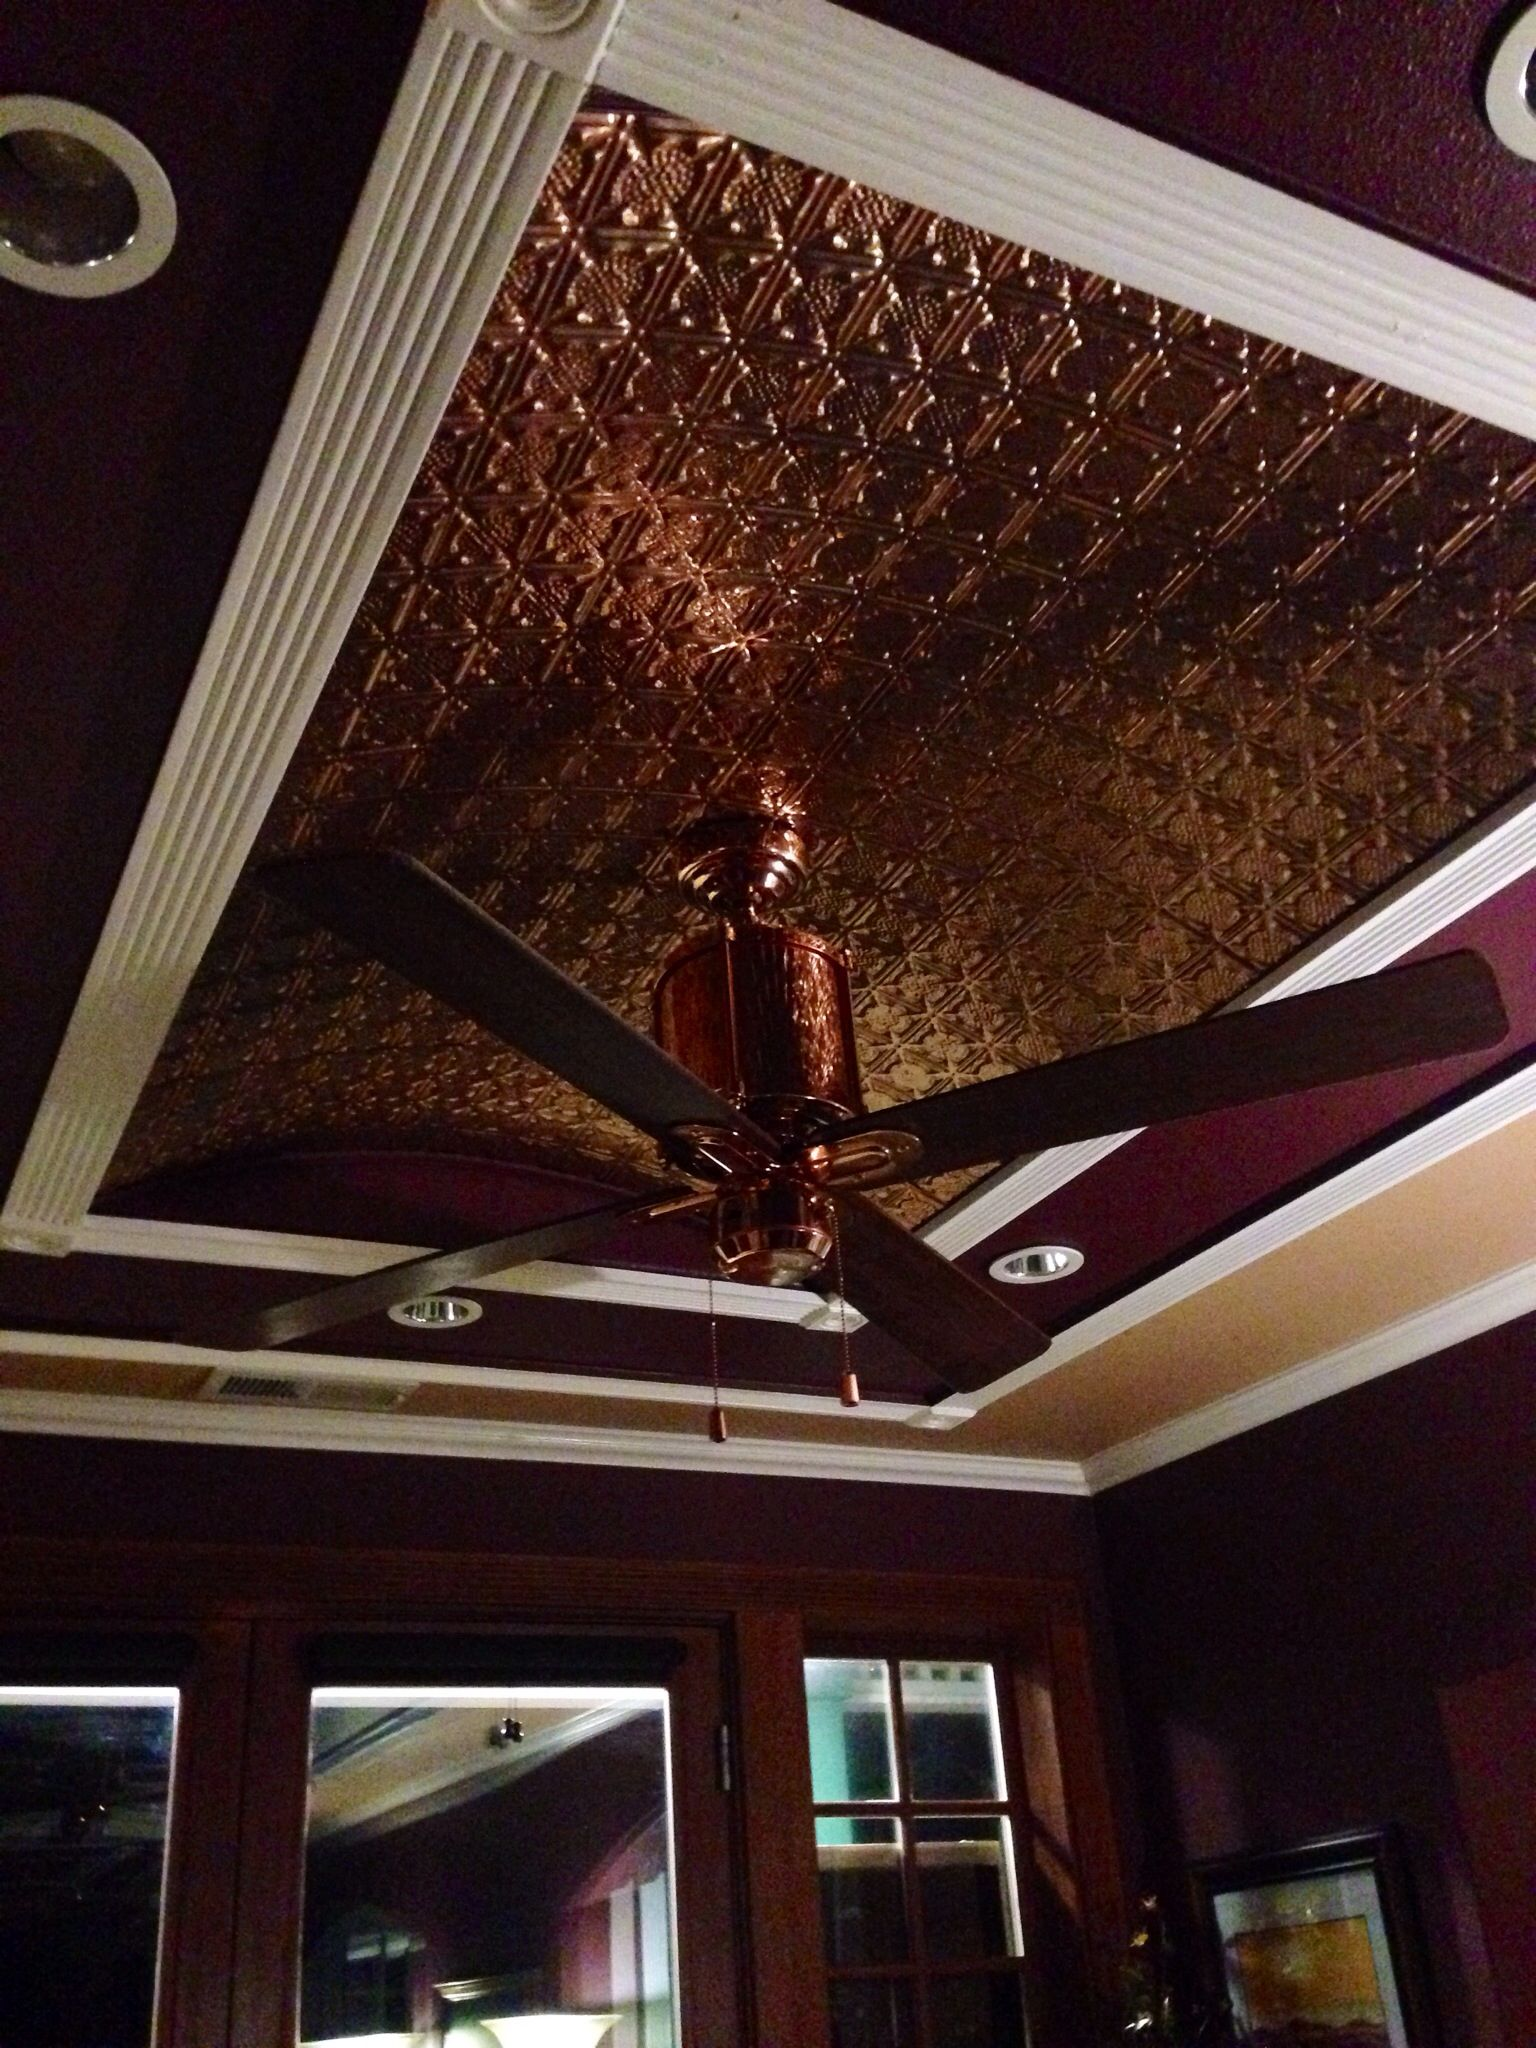 Copper Tiled Ceiling With A Copper Fan Something Like This Would Work Http Www Barnlightelectric Com Barn Vintage Ceiling Fans Tin Ceiling Design Ceiling